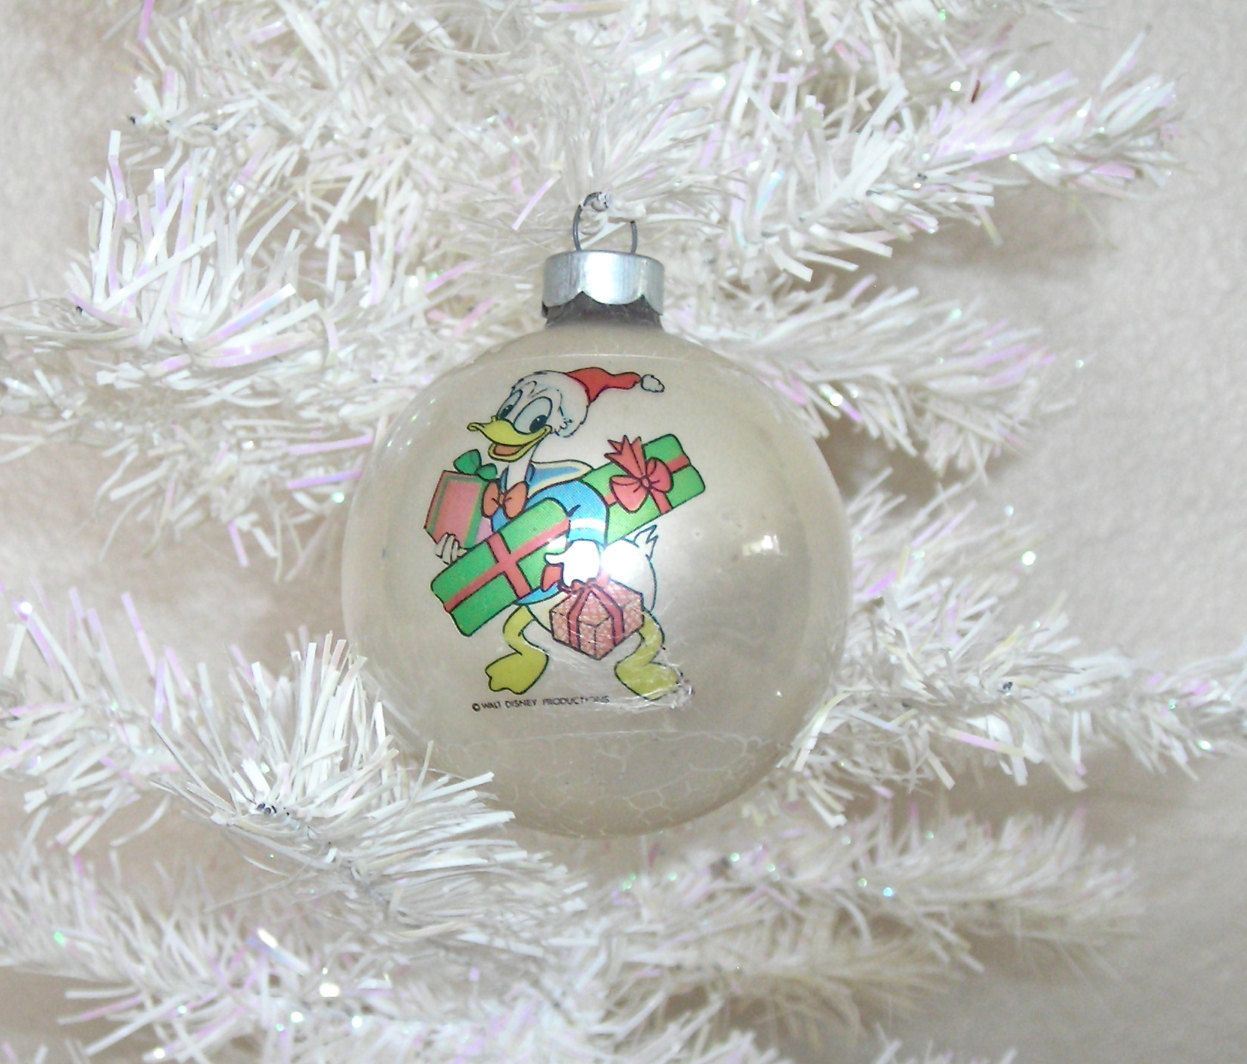 Donald Duck Vintage Glass Christmas Ornament Made In Usa Disney Character Holiday Ball How To Make Ornaments Glass Christmas Ornaments Christmas Ornaments